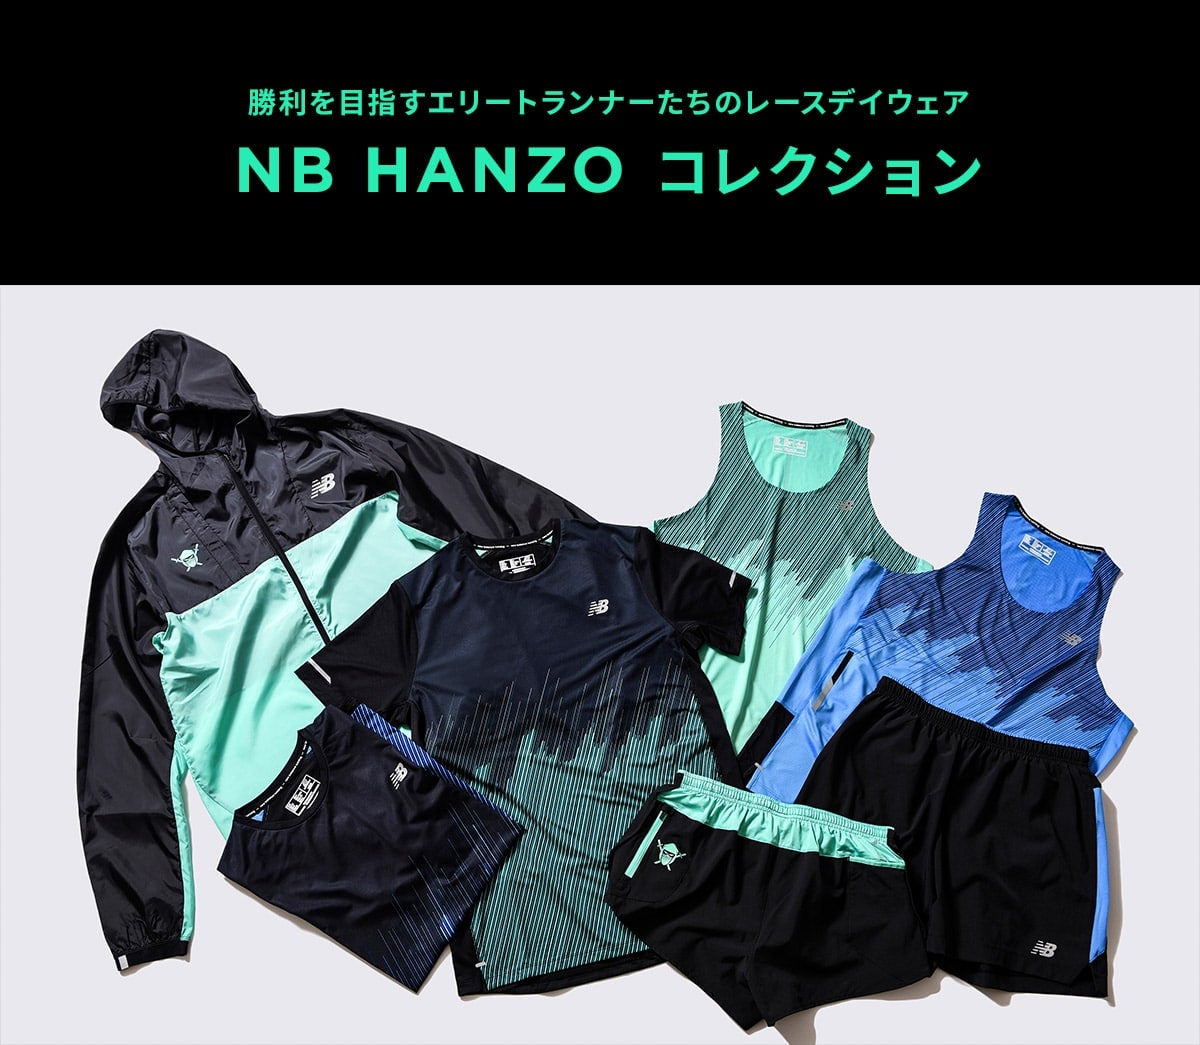 HANZO APPAREL